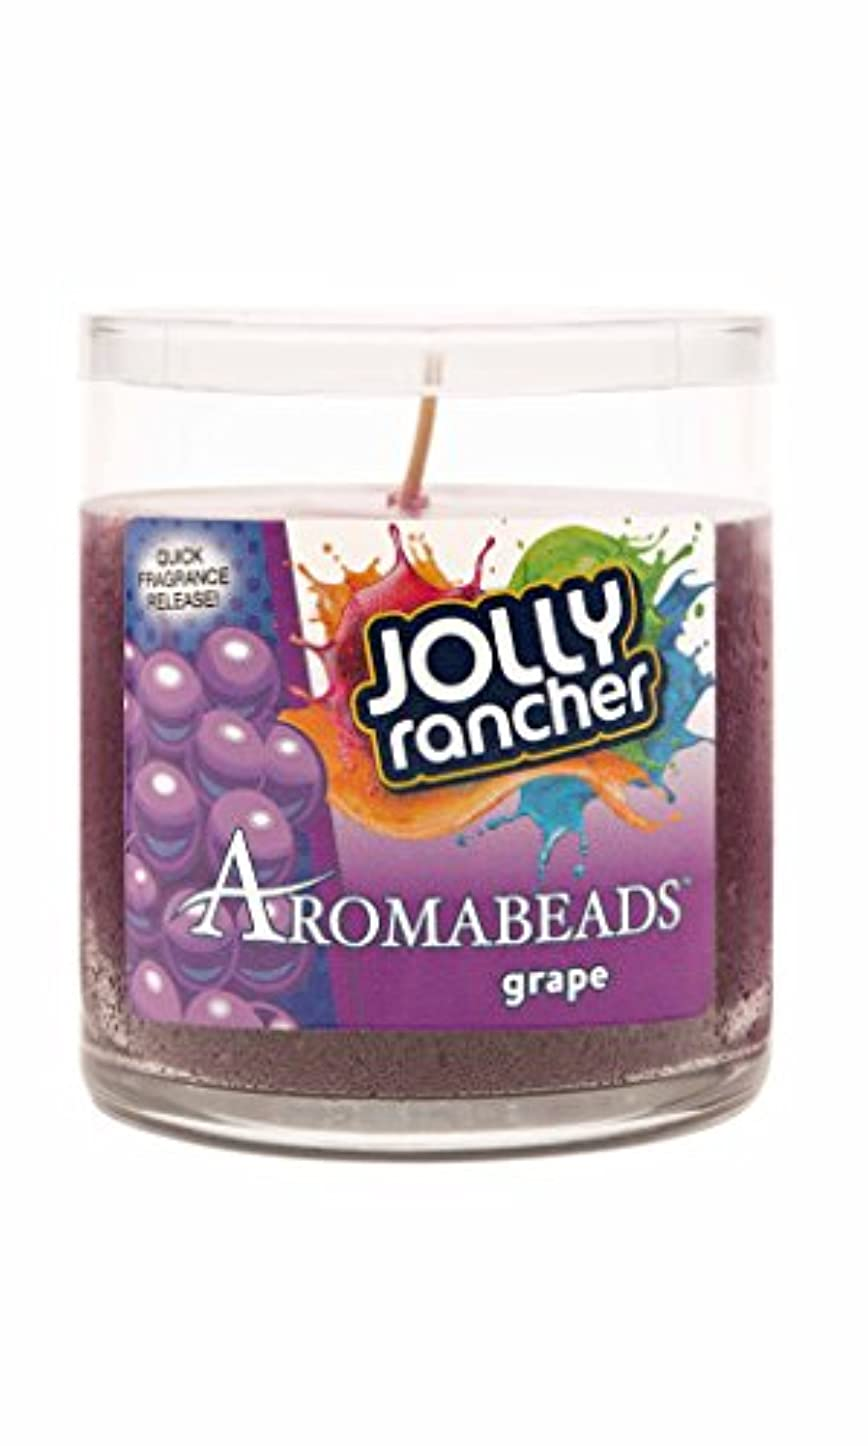 Hanna 's Aromabeads 6oz Hershey 's Candy Scented Candle パープル